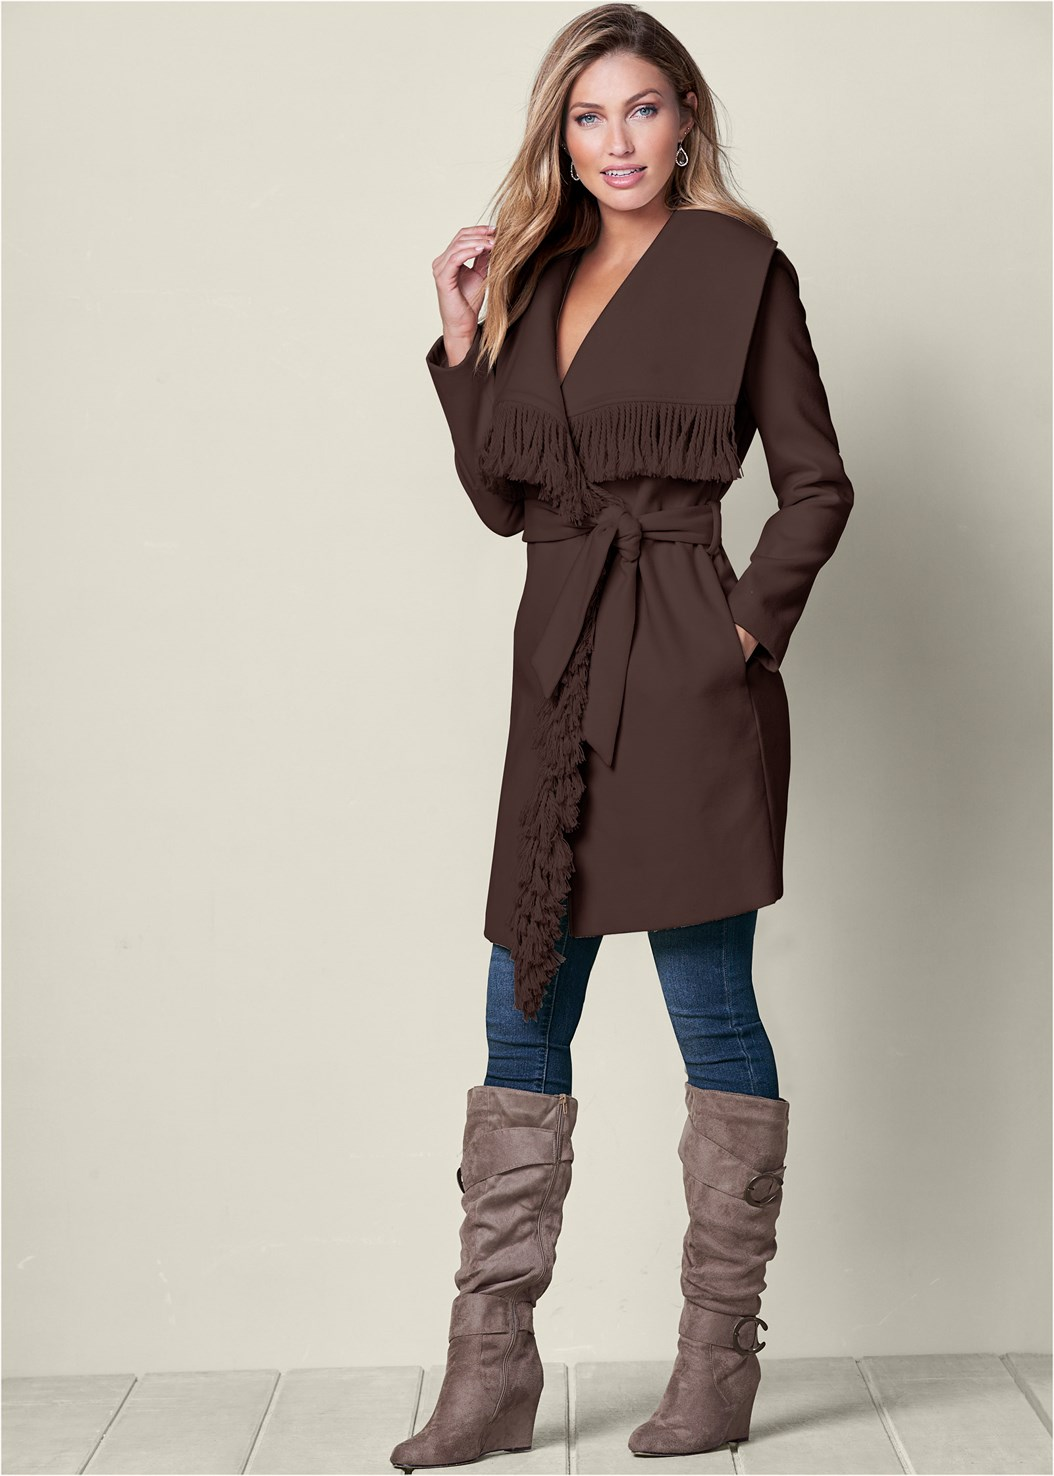 Fringe Detail Outerwear,Mid Rise Color Skinny Jeans